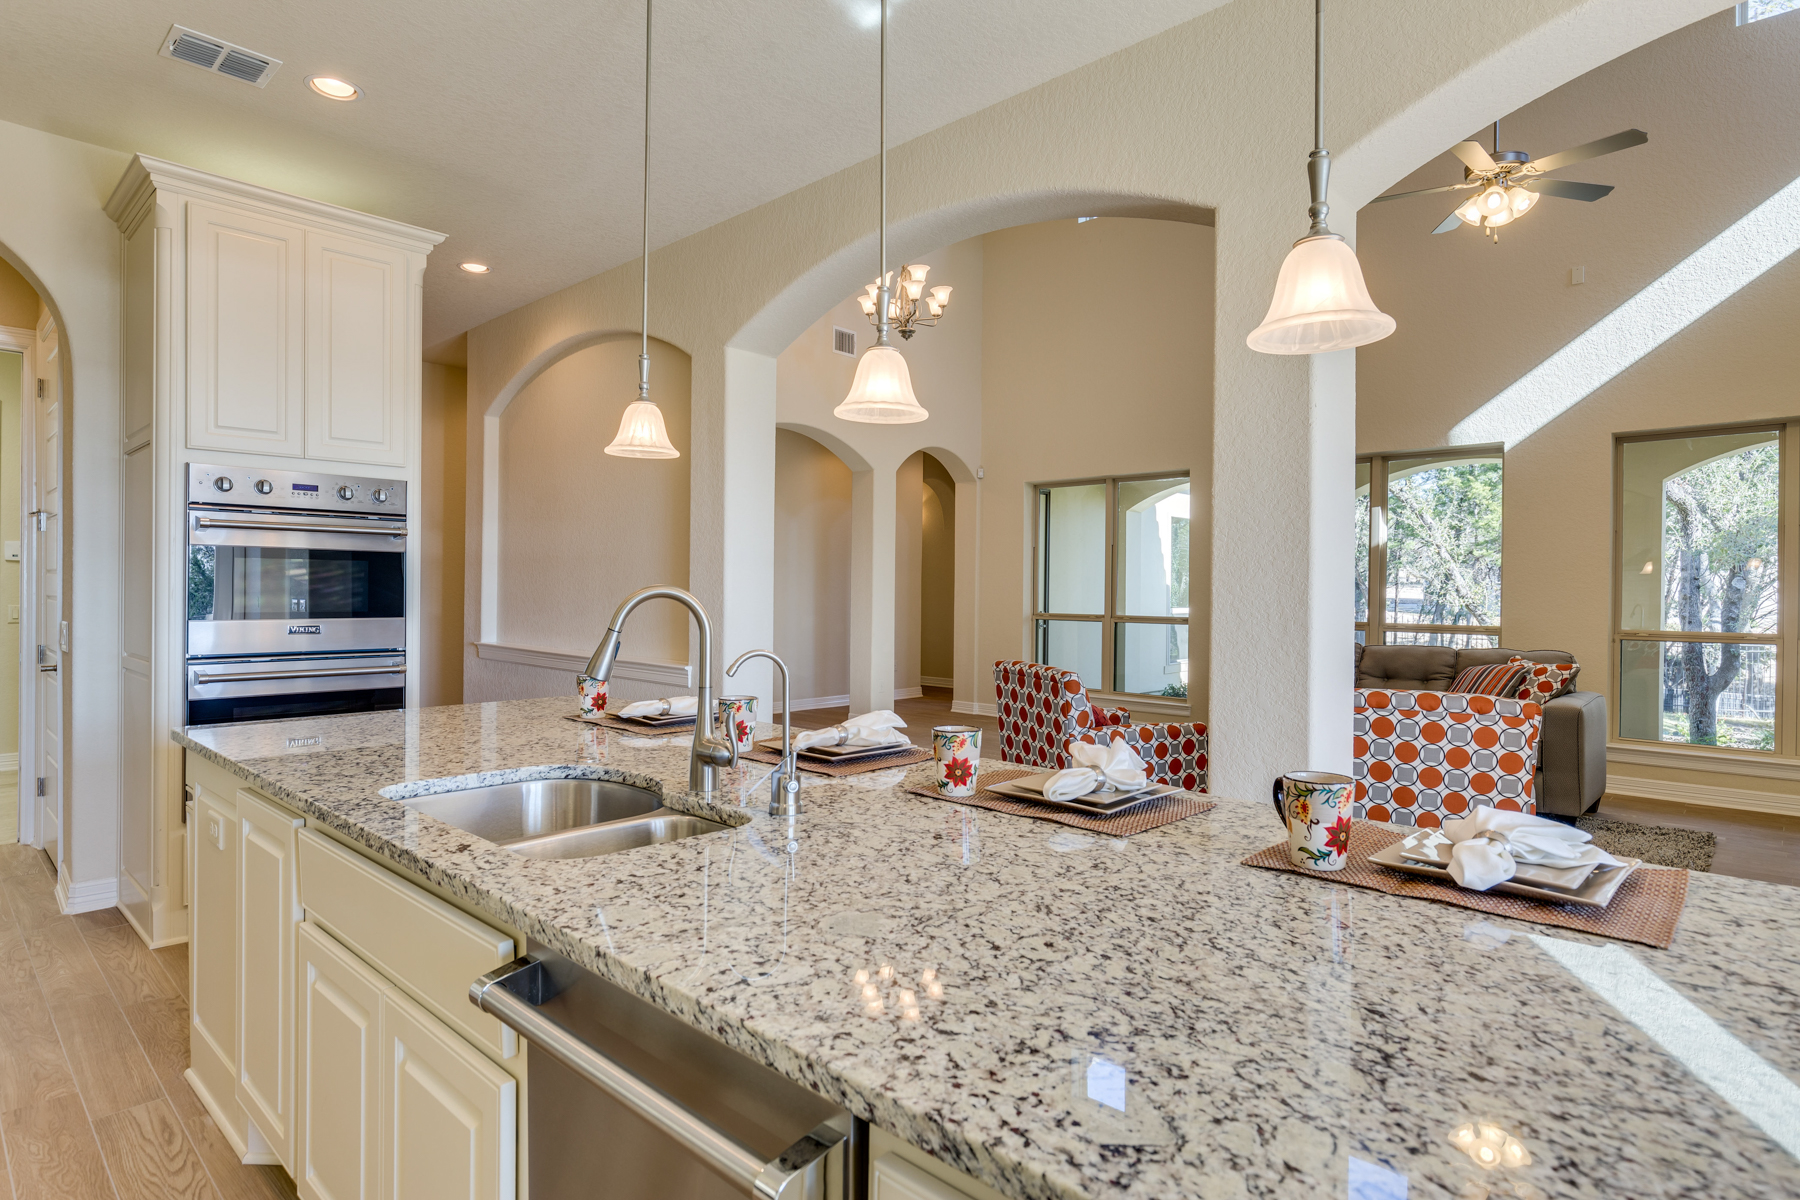 Additional photo for property listing at Stunning New Construction in The Dominion 7214 Bluff Run San Antonio, Texas 78257 Estados Unidos